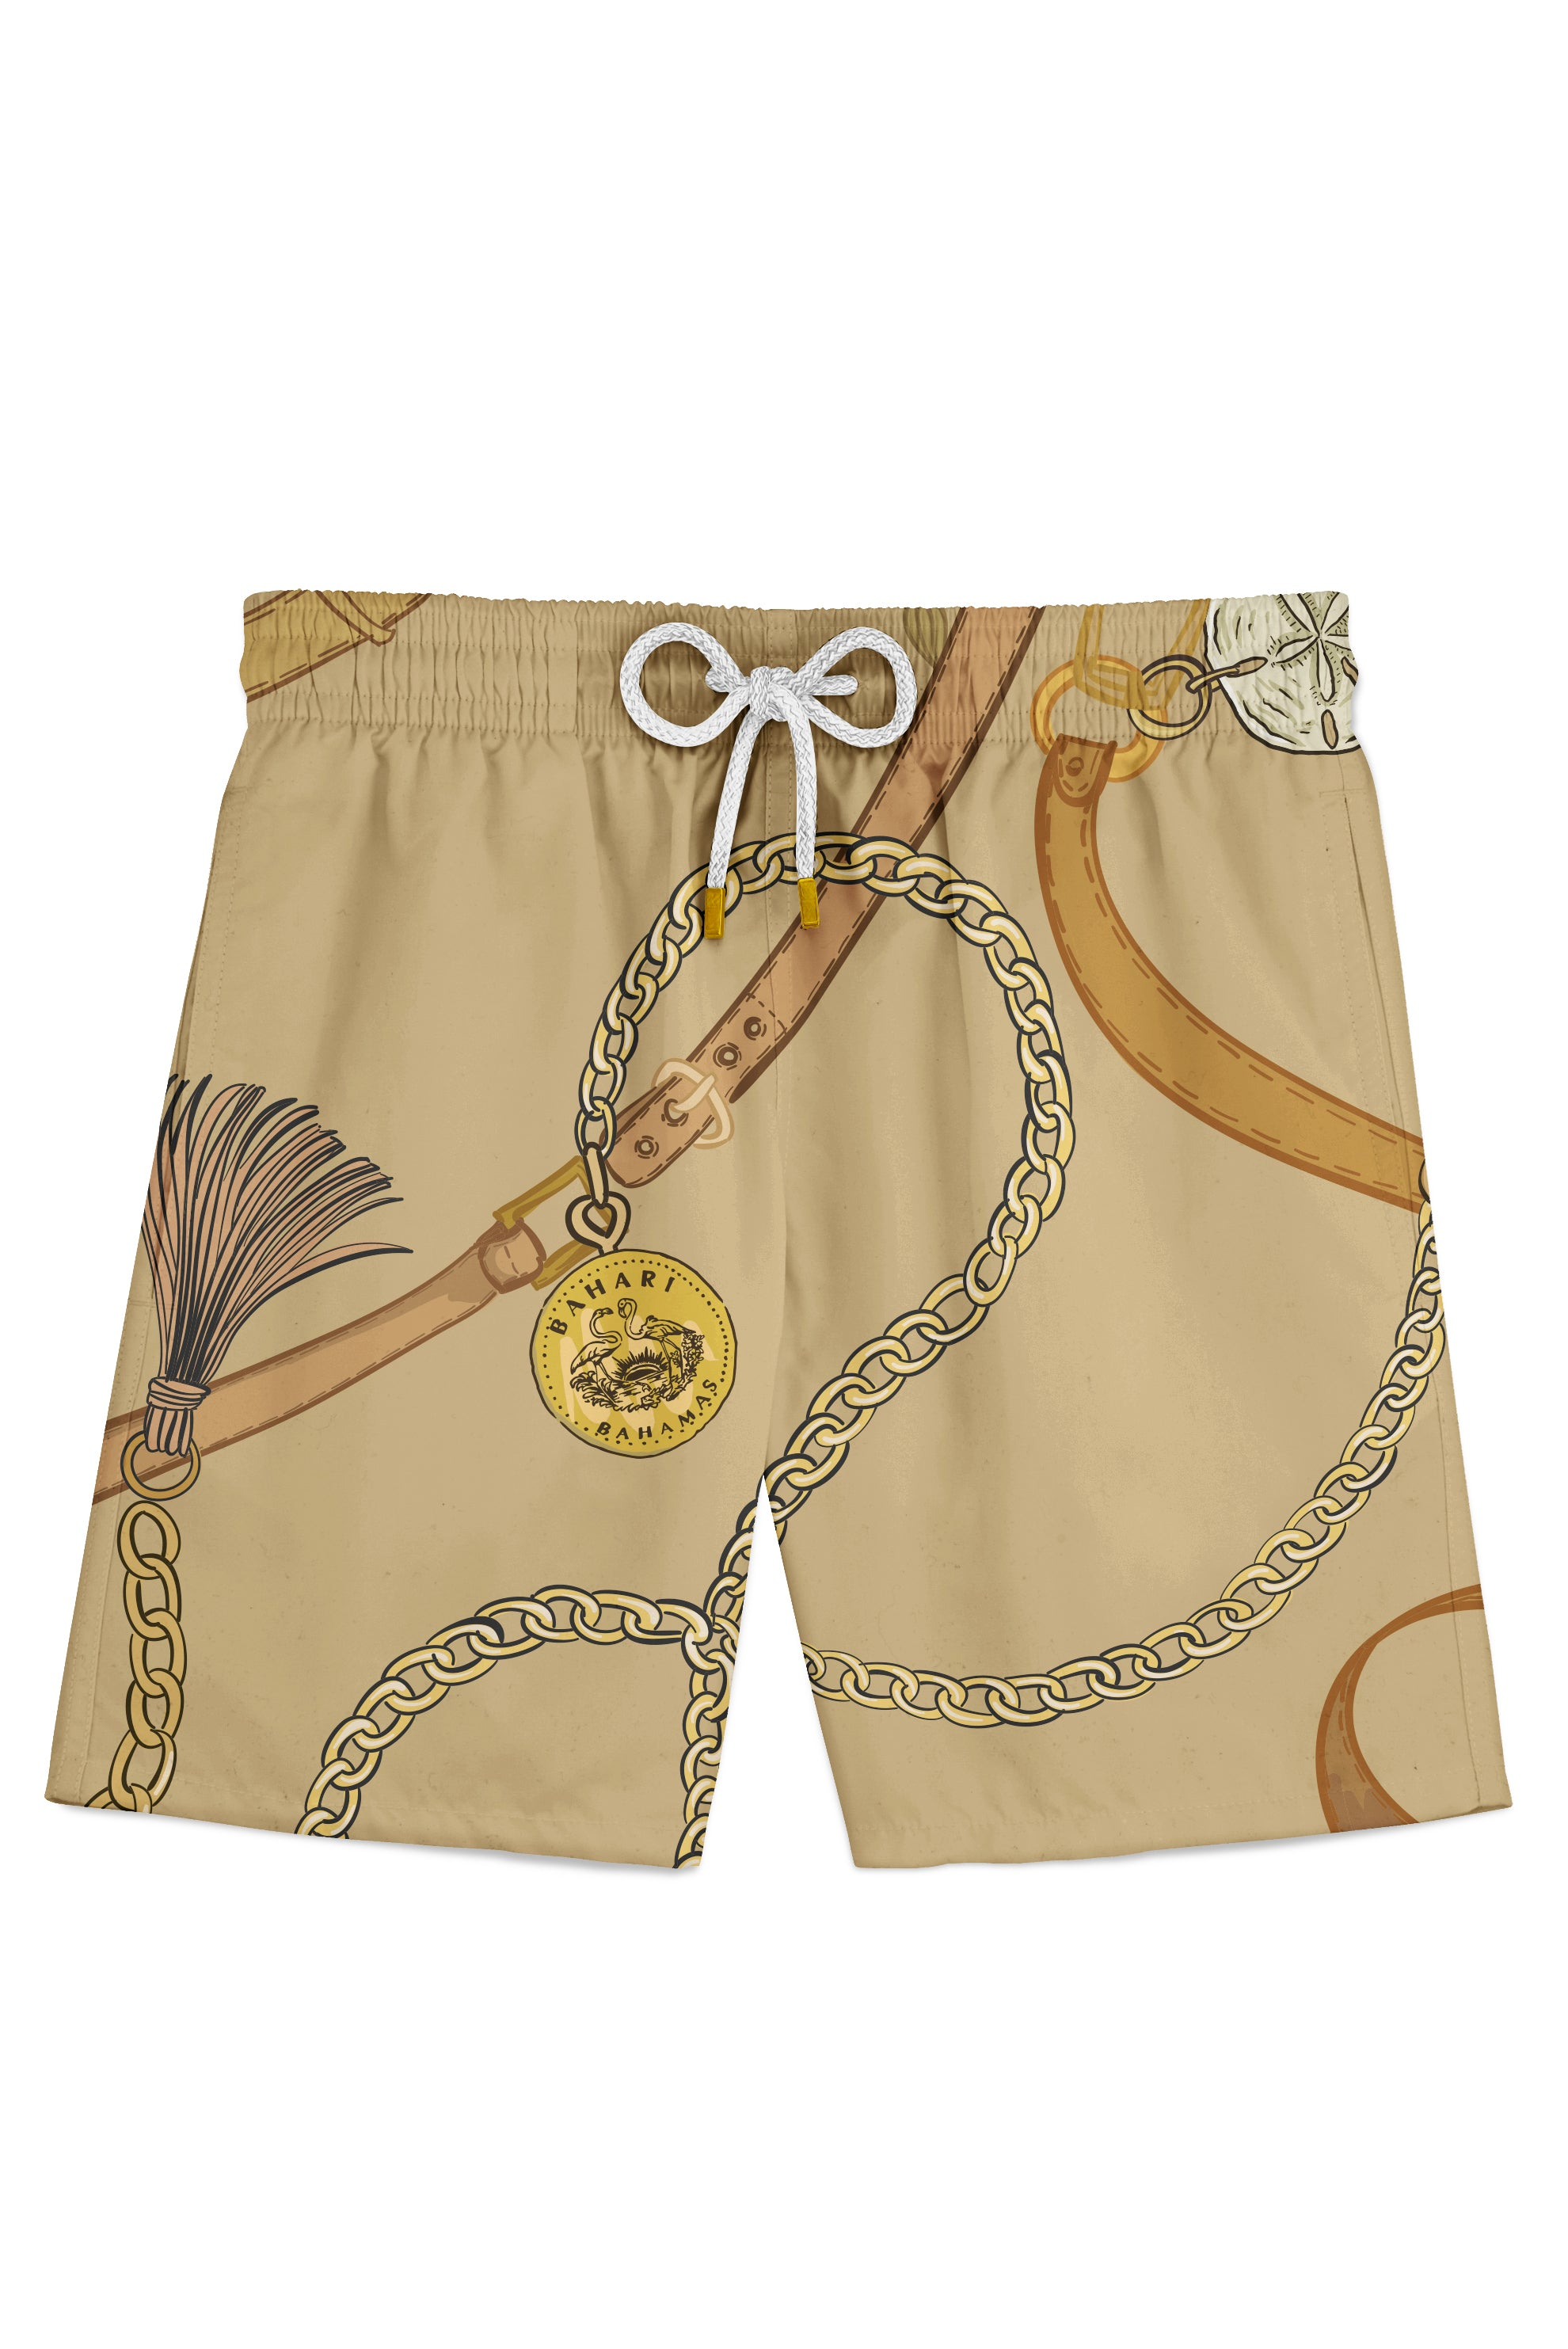 THE MEDALLION SHORTS